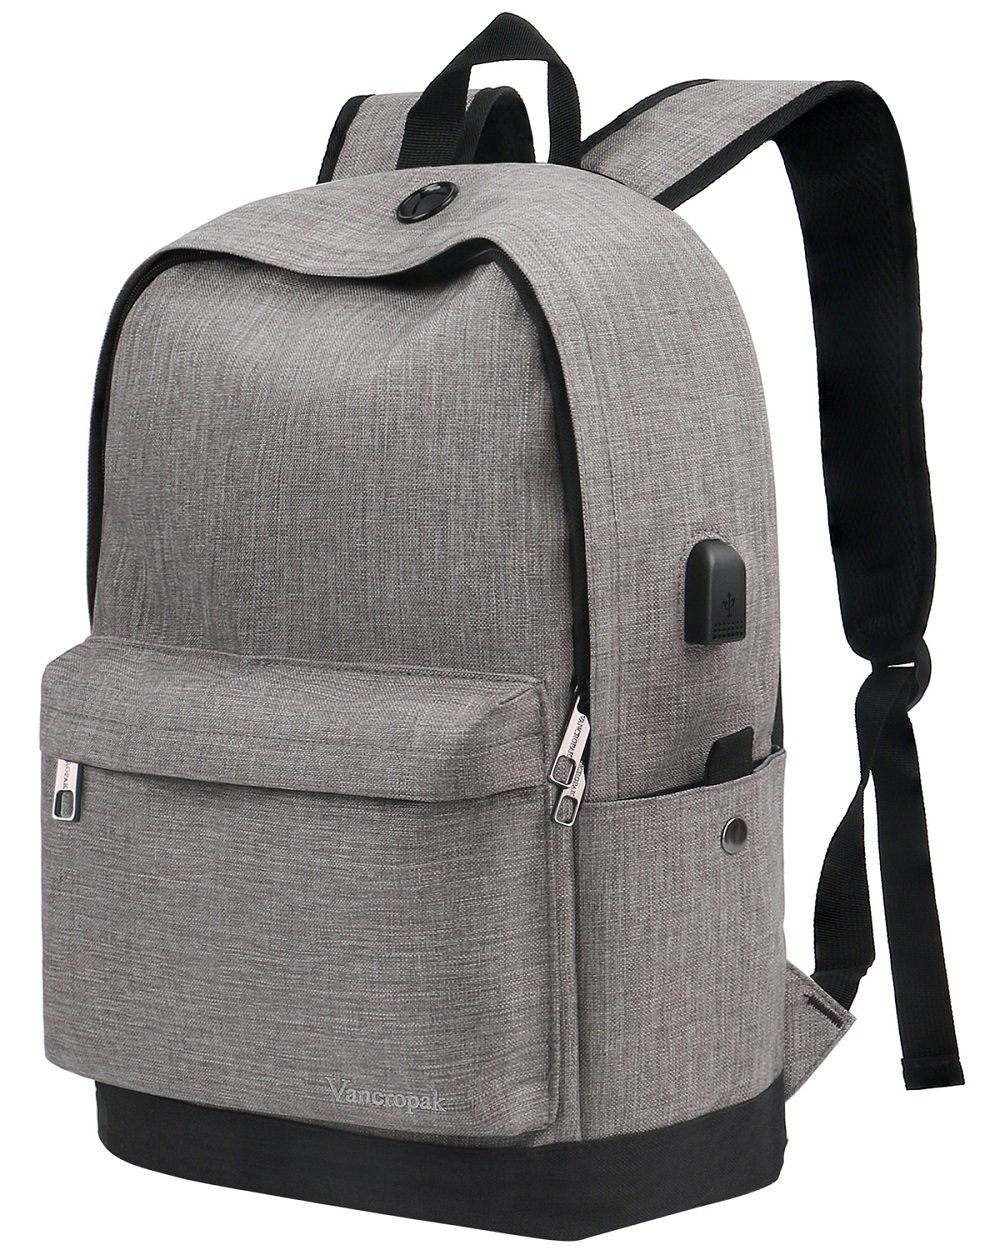 cdb356d6339a Vancropak Backpack, Travel Water Resistant School Backpacks with USB ...